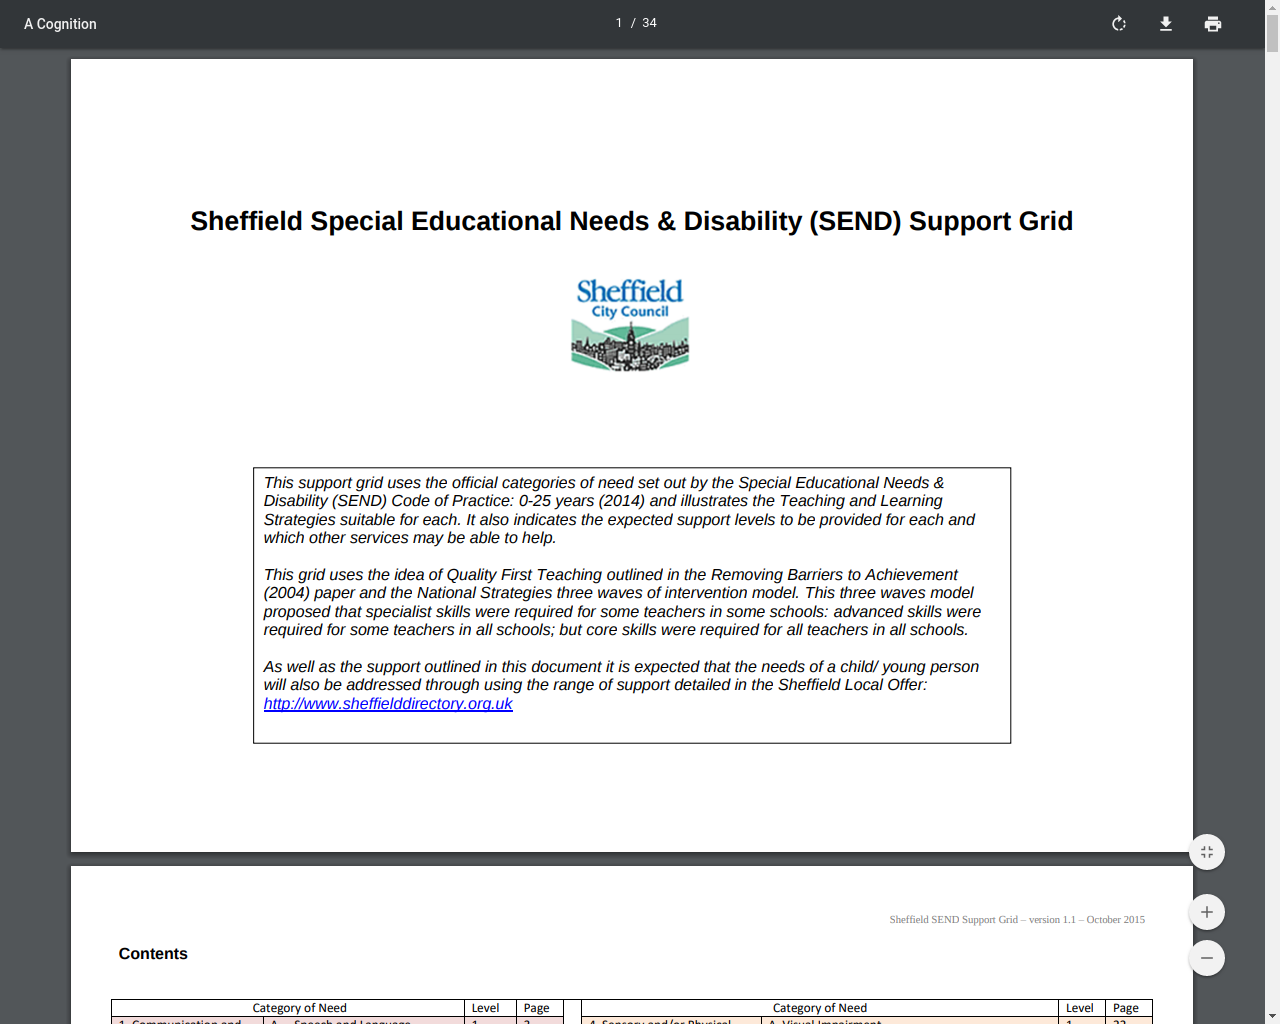 Sheffield SEND Support Grid